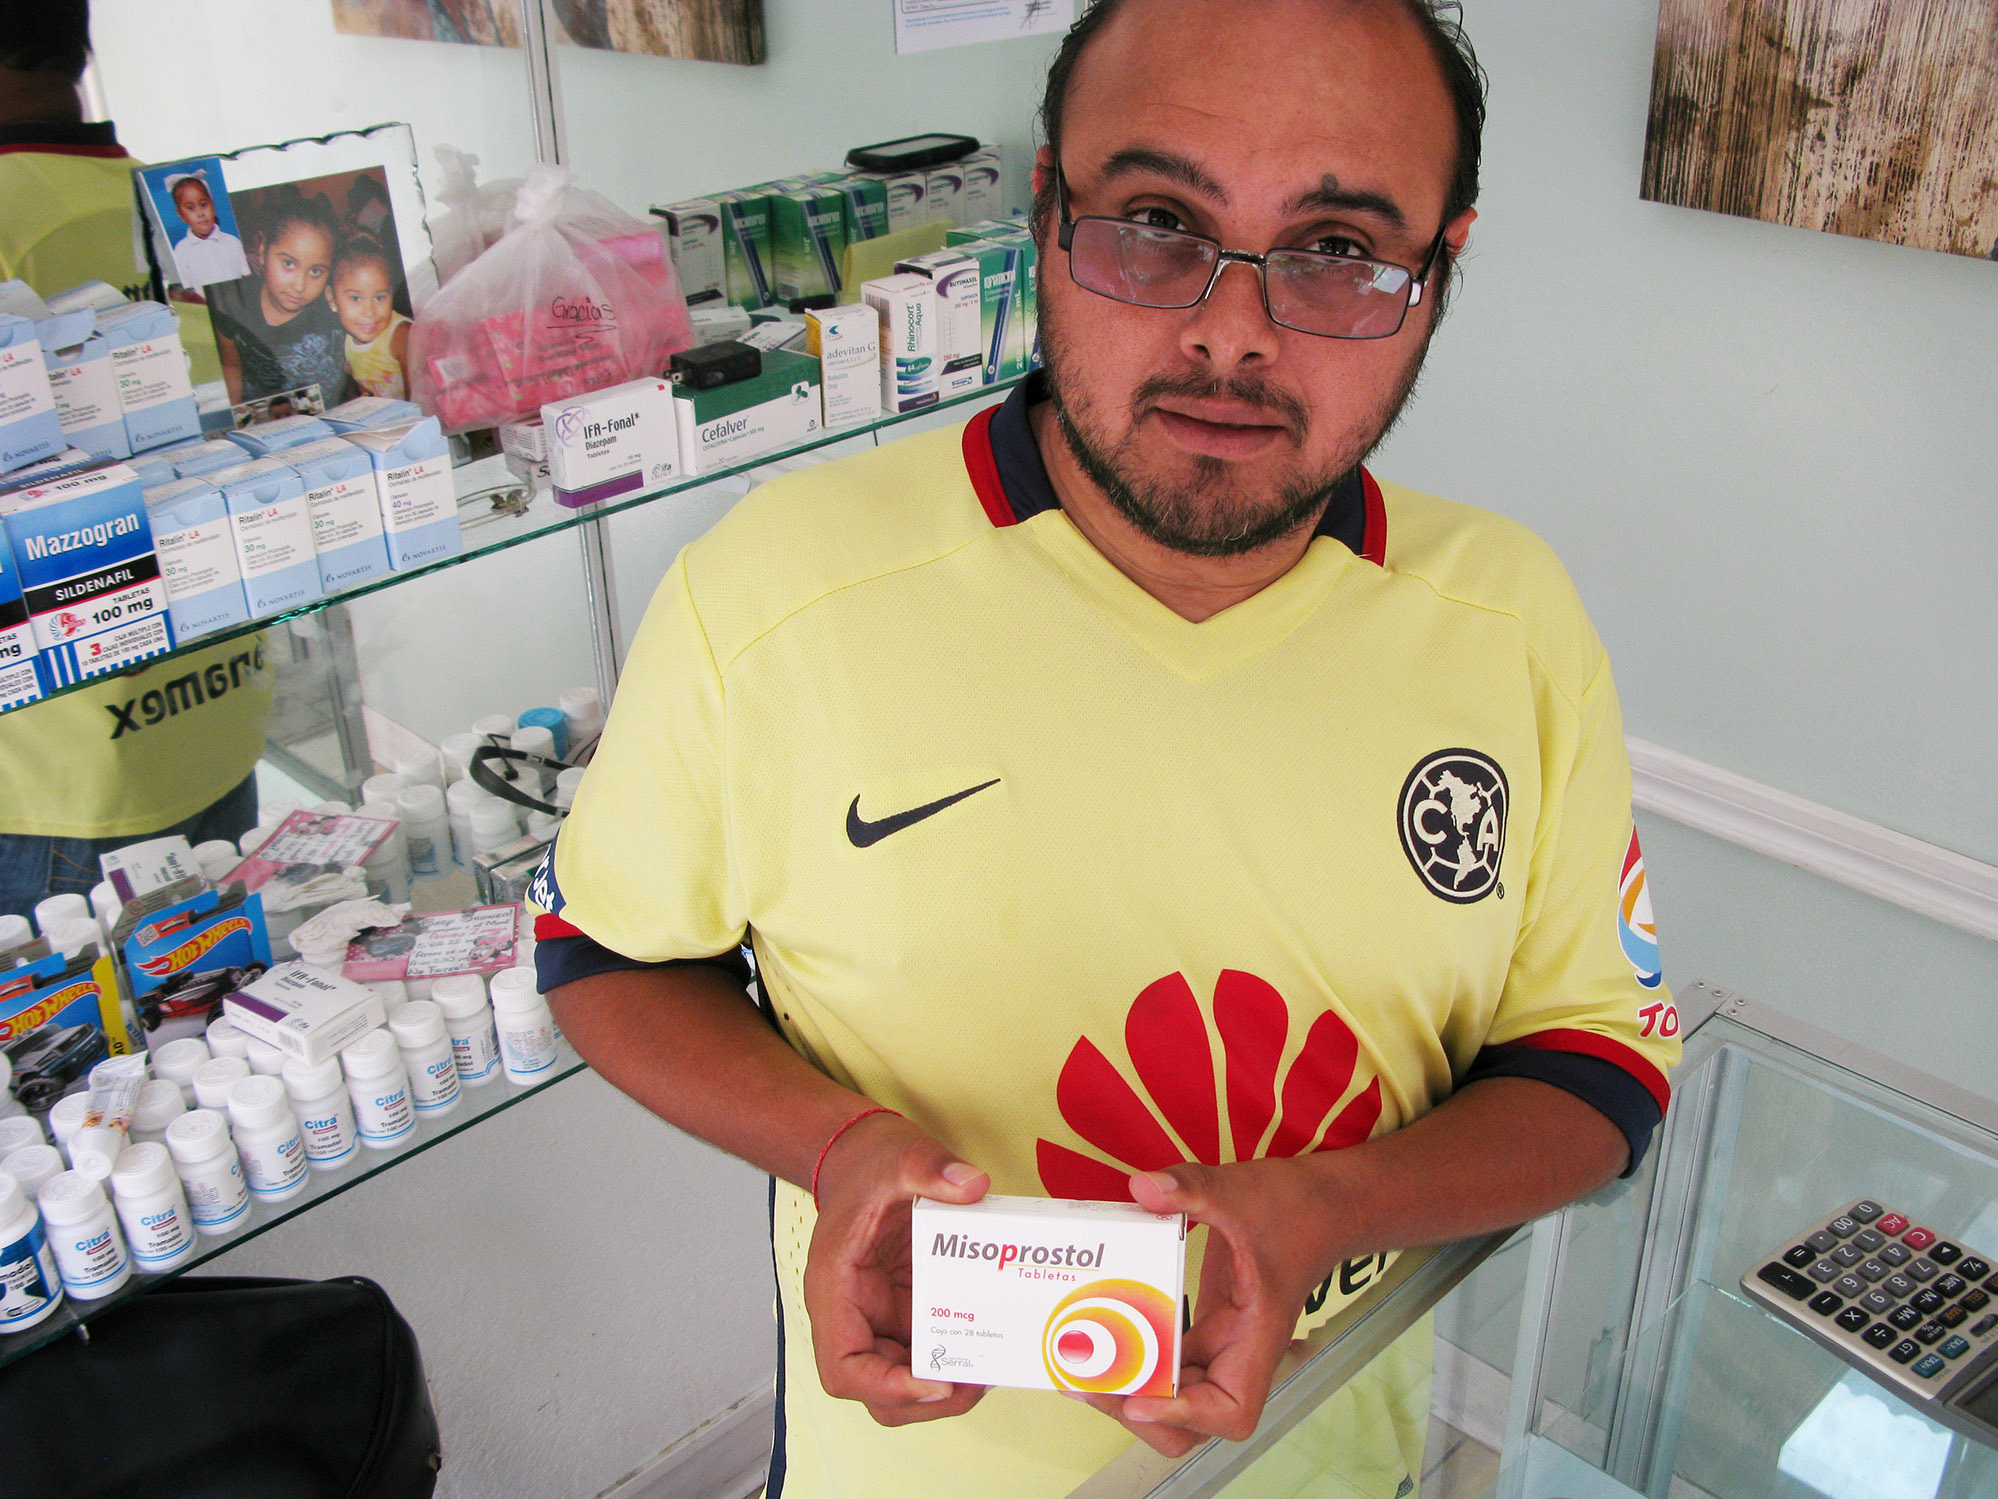 Luis Alberto de la Rosa says he sells lots of misoprostol, a drug used in abortions and in ulcer treatment, to women from Texas who come to his Miramar Pharmacy in Nuevo Progreso, Mexico. John Burnett/NPRLuis Alberto de la Rosa says he sells lots of misoprostol, a drug used in abortions and in ulcer treatment, to women from Texas who come to his Miramar Pharmacy in Nuevo Progreso, Mexico. John Burnett/NPR